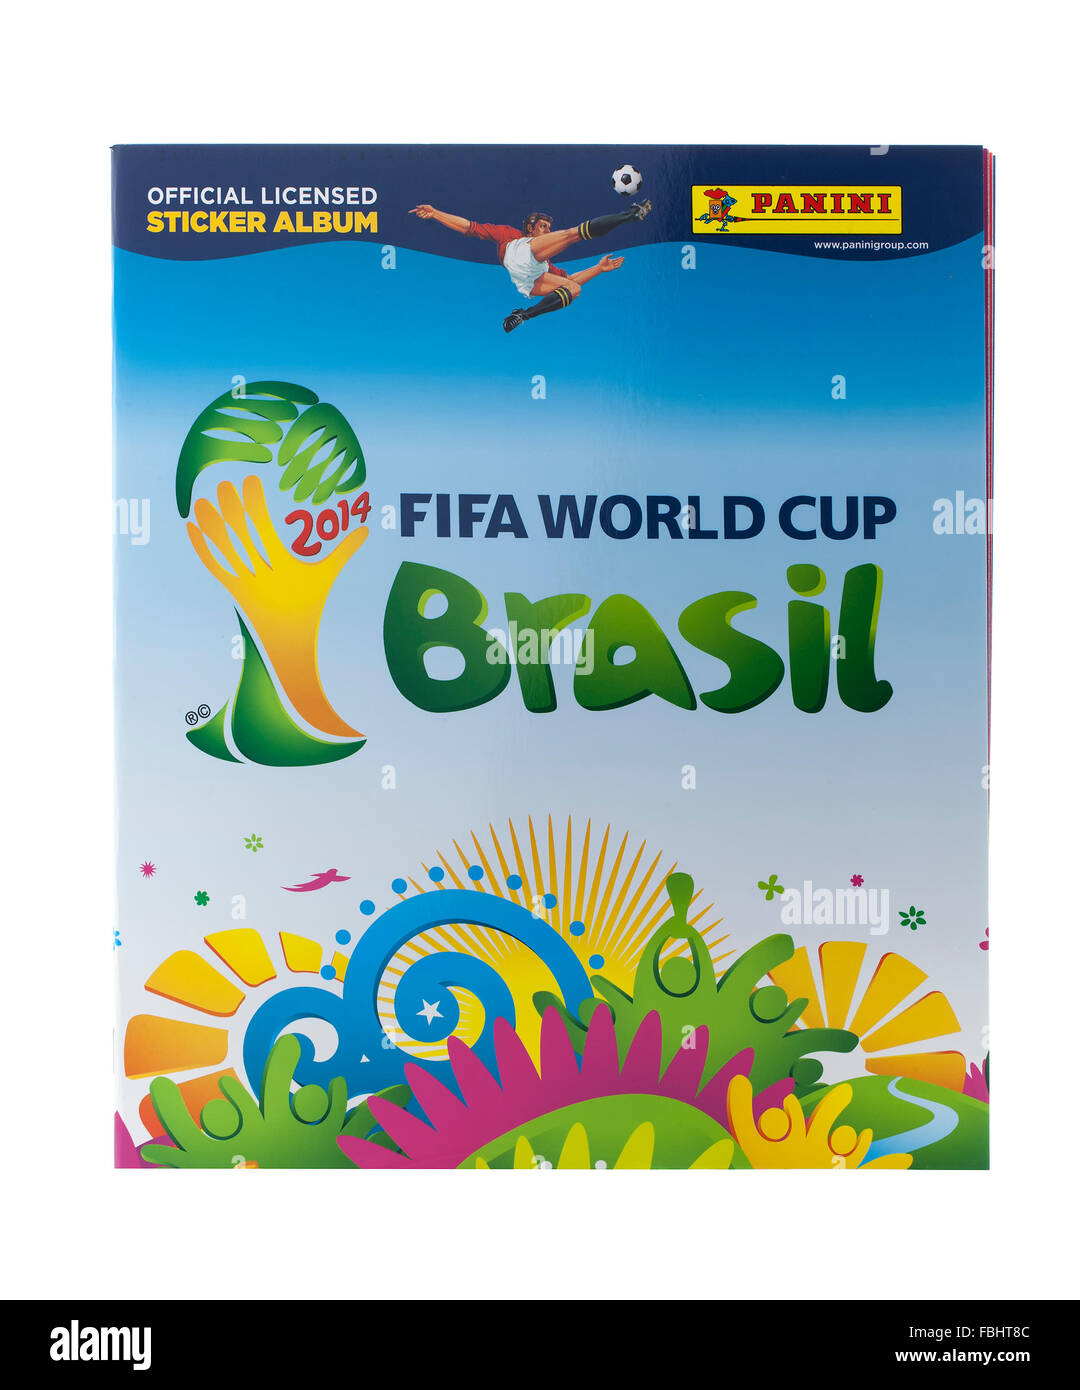 Panini FIFA World Cup 2014 Official  Licensed Sticker Album on a white background - Stock Image